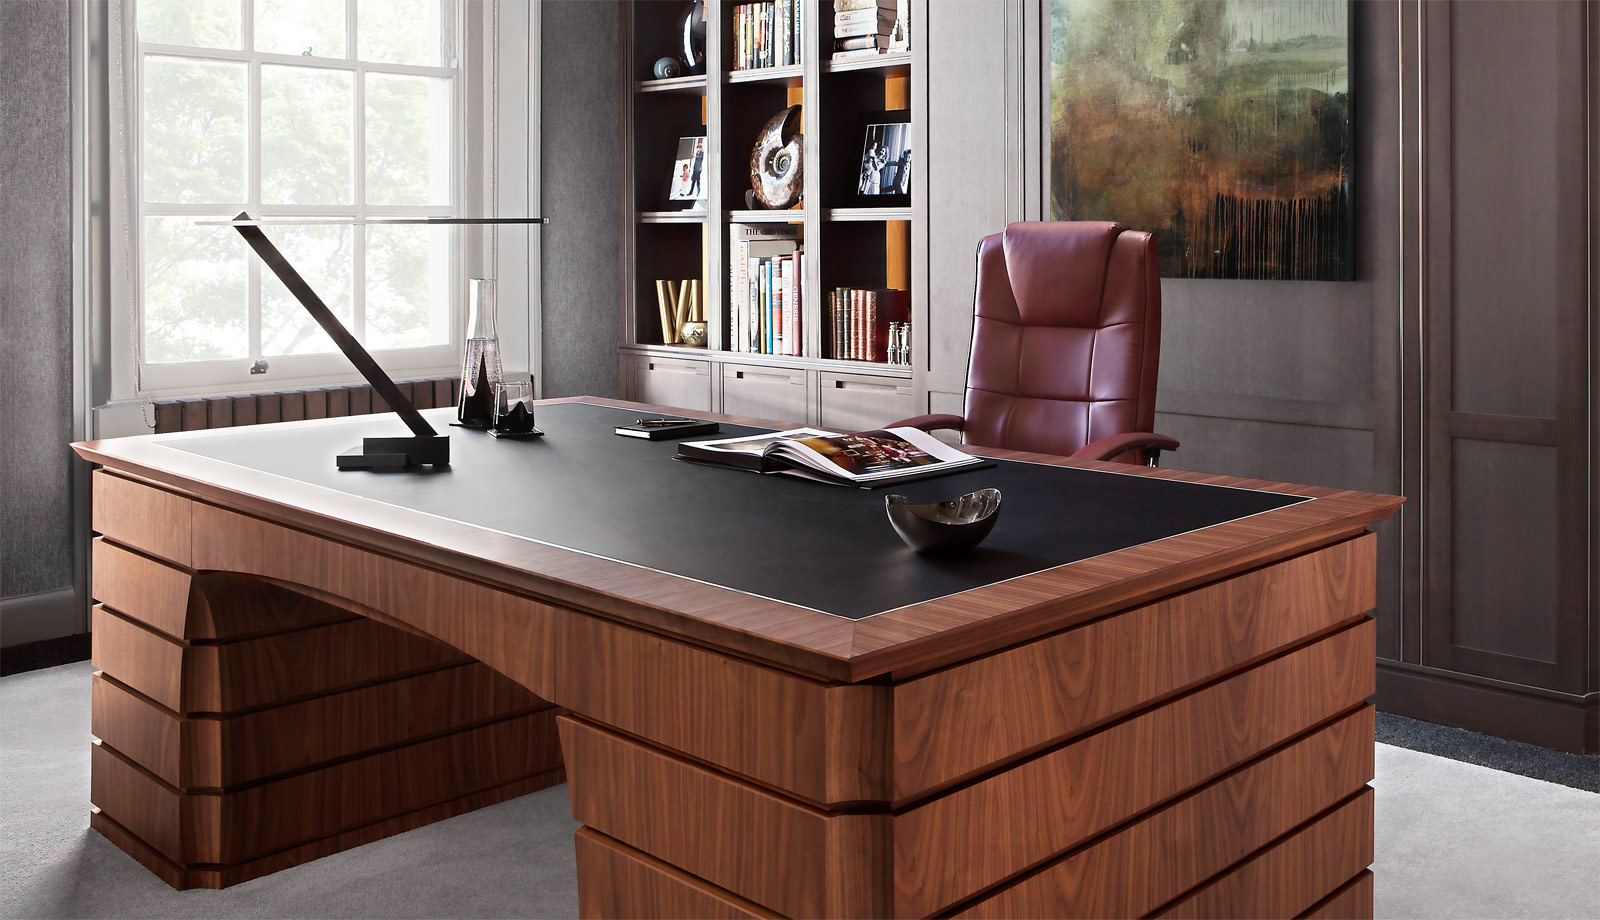 British Furniture Maker Smallbone Unveils New Desk And Wine Wall